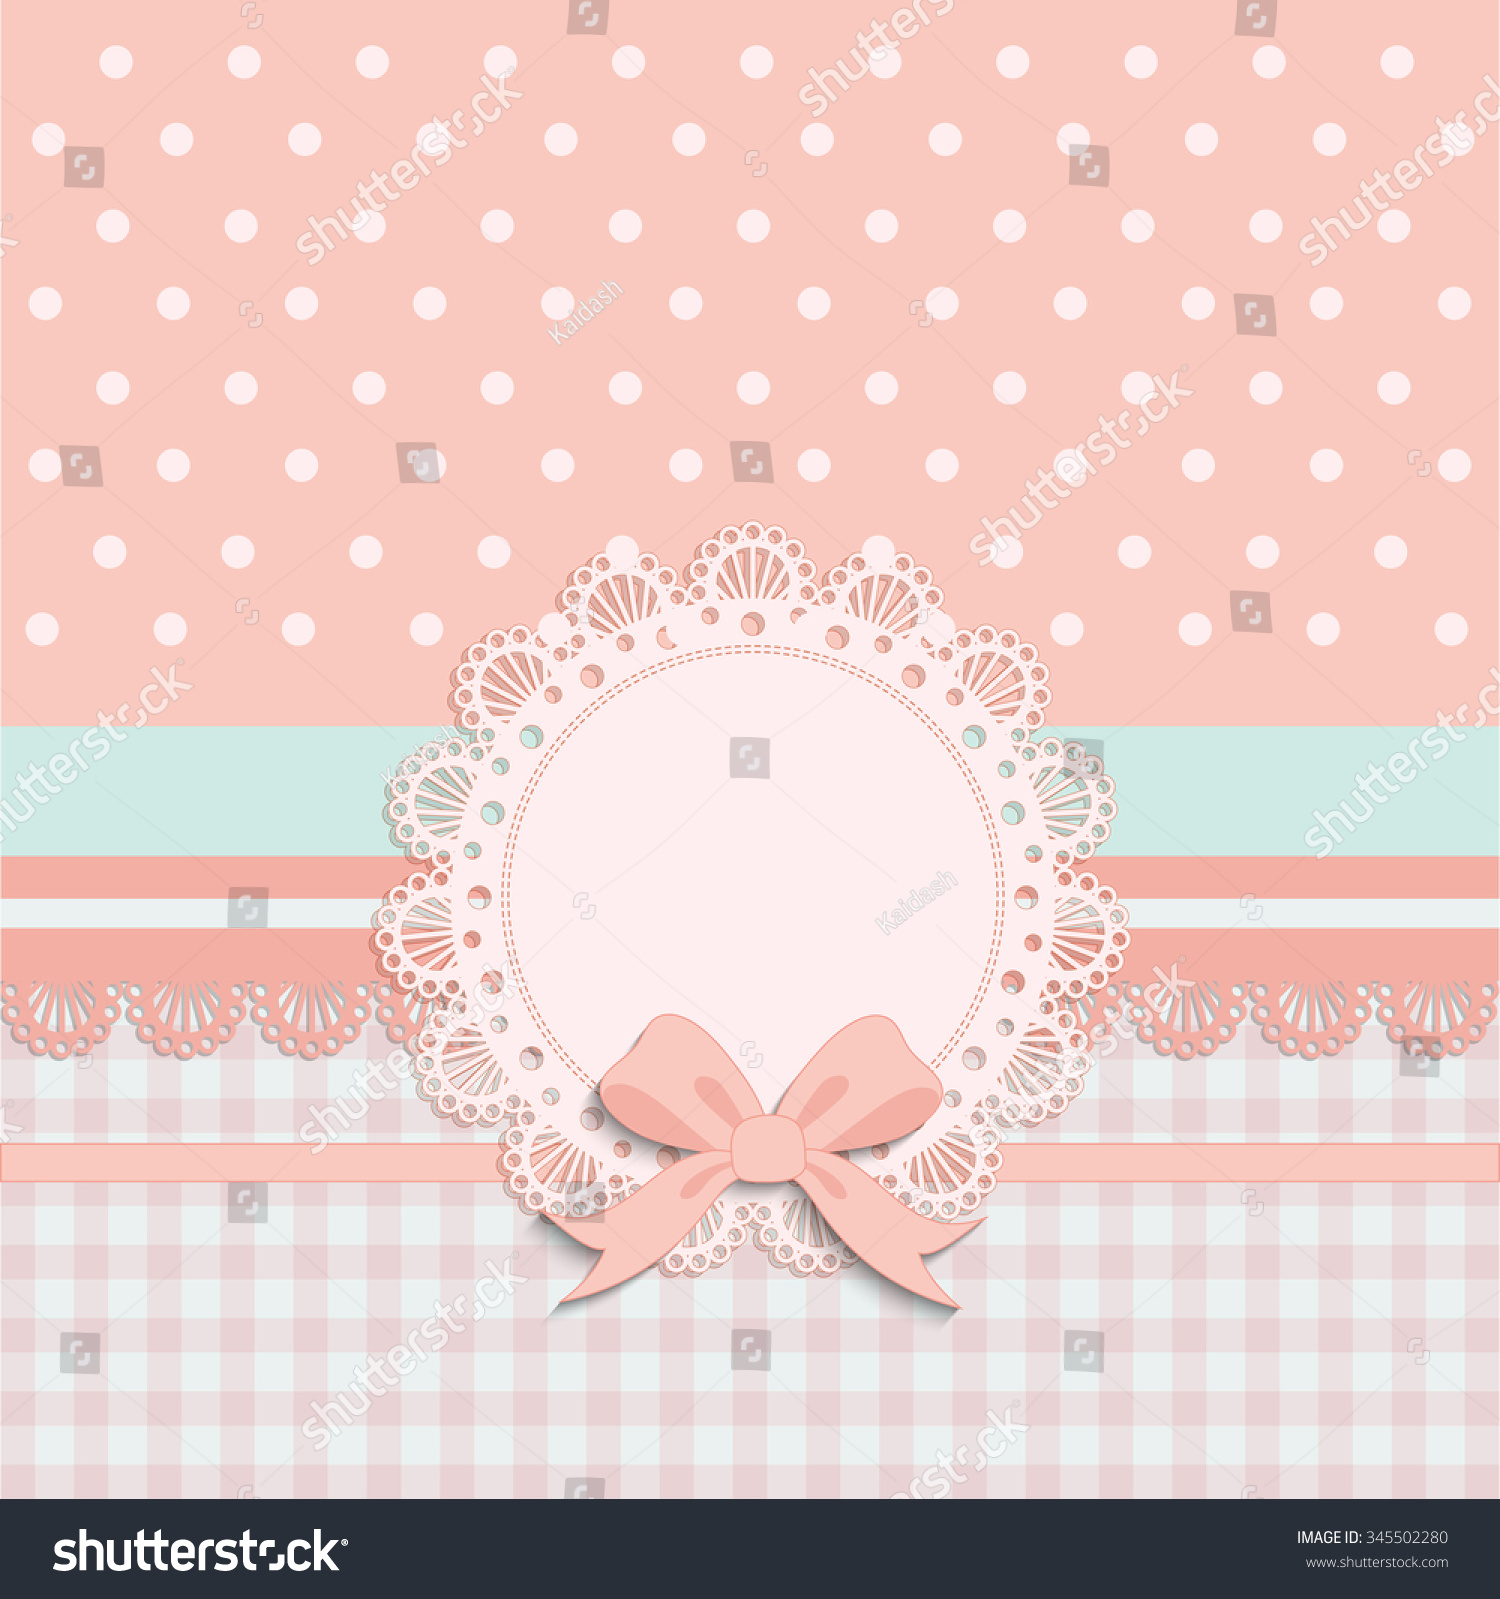 cream polka dot wallpaper